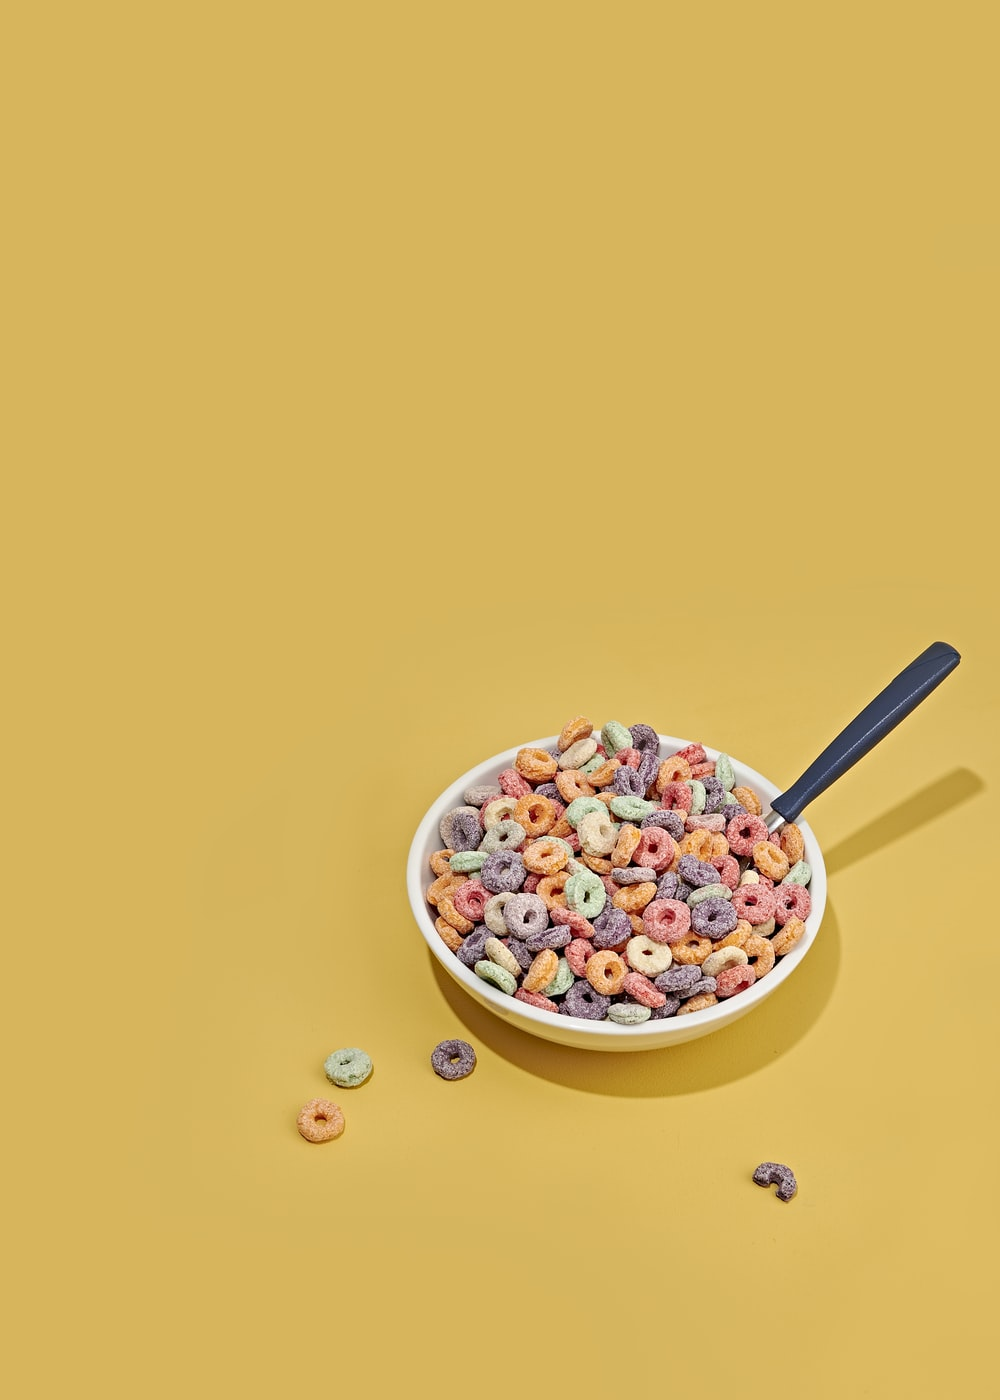 cereals with milk on bowl